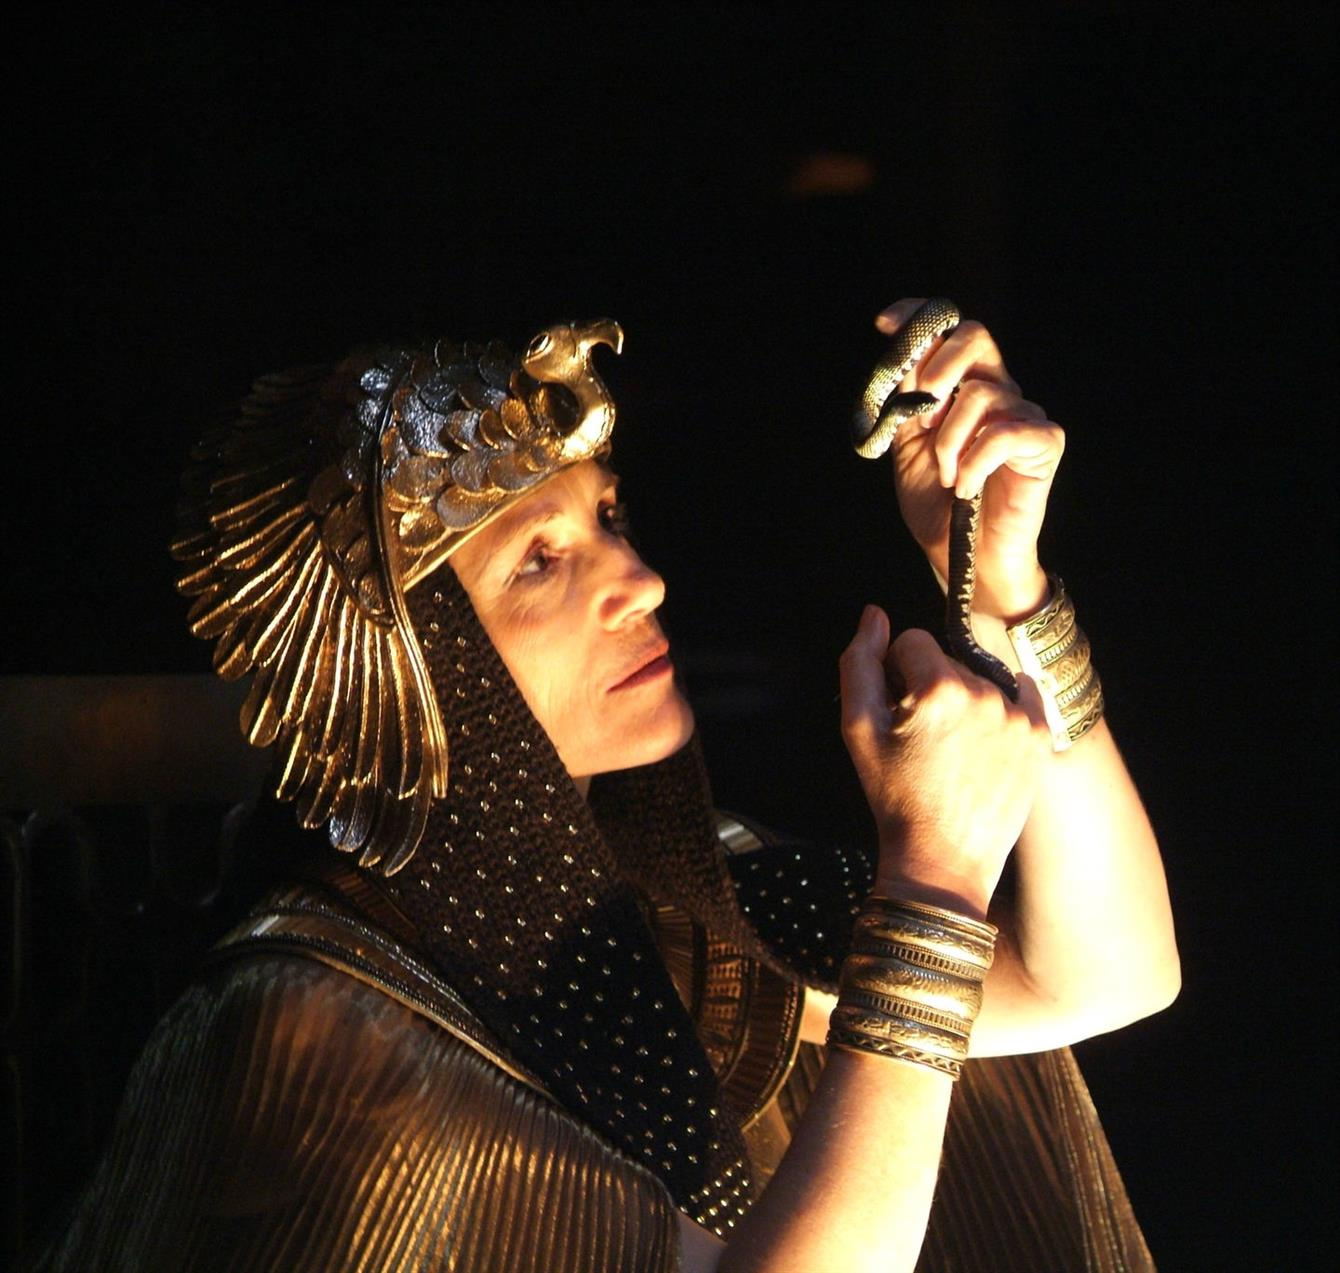 Harriet Walter as Cleopatra in the RSC's production of Antony & Cleopatra in 2006, directed by Gregory Doran.